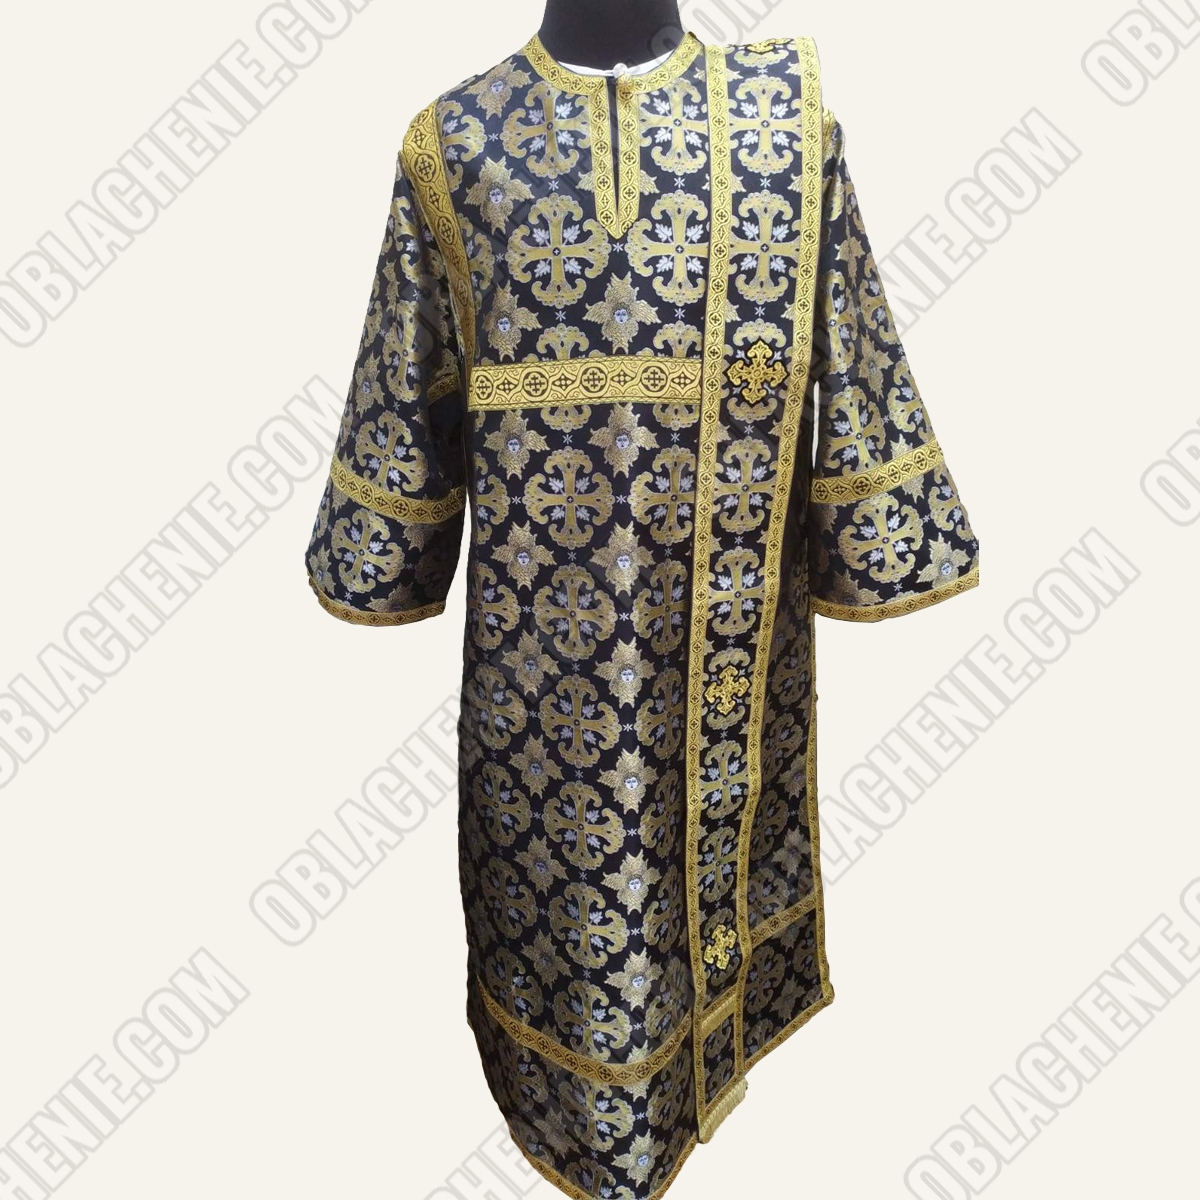 DEACON'S VESTMENTS 11094